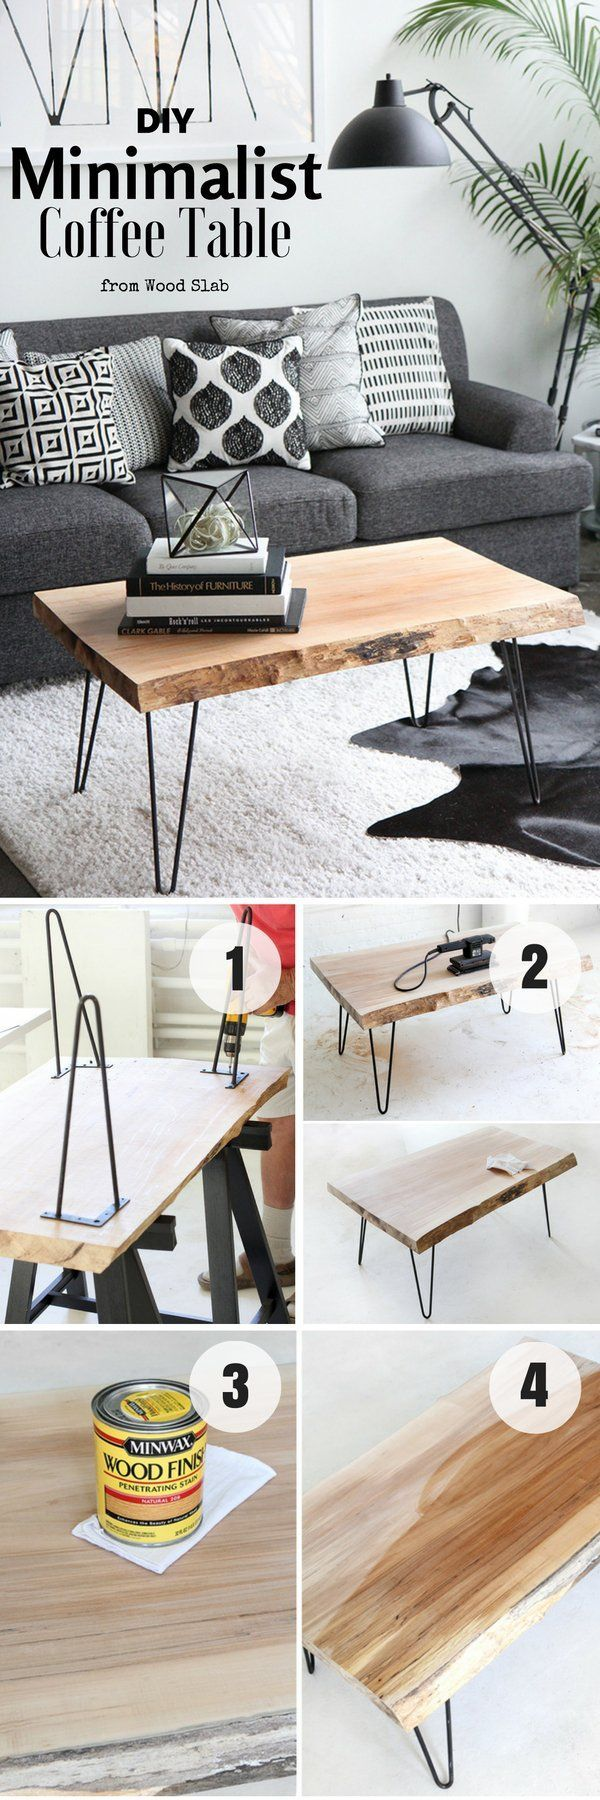 Check out how to build this easy DIY Minimalist Coffee Table @istandarddesign